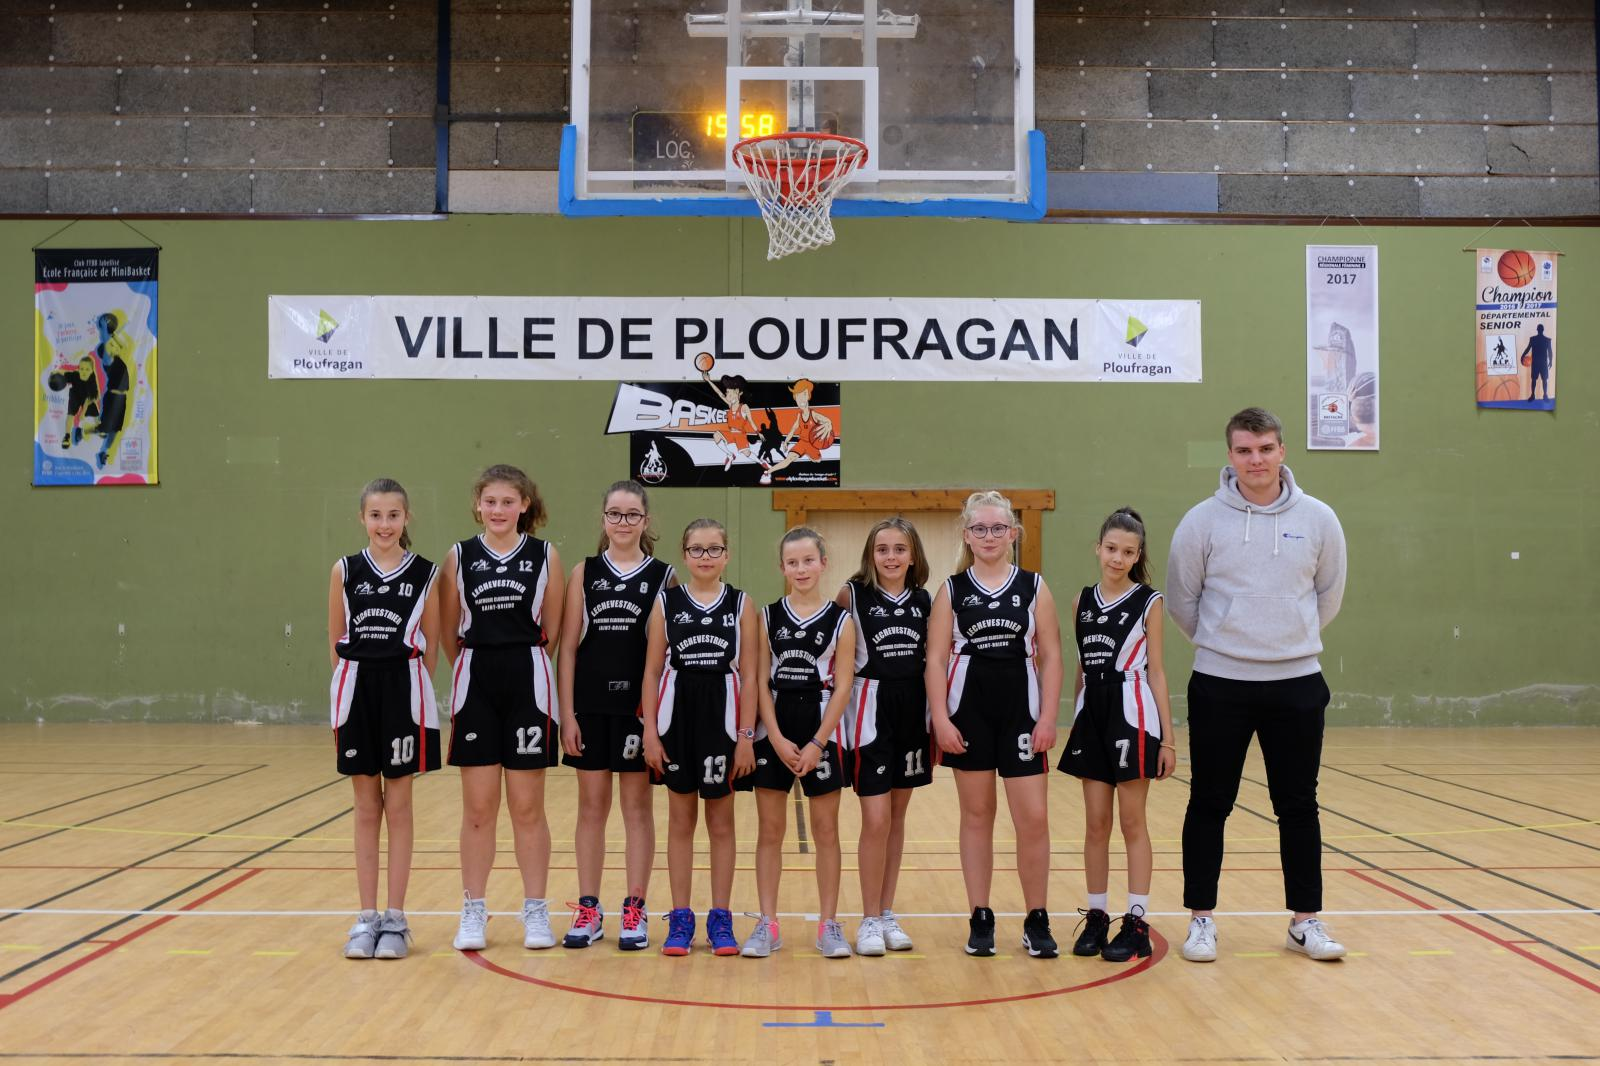 U13 FILLES-4 CTC - DEVELOPPEMENT 3 - AL PLOUFRAGAN BASKET-BALL